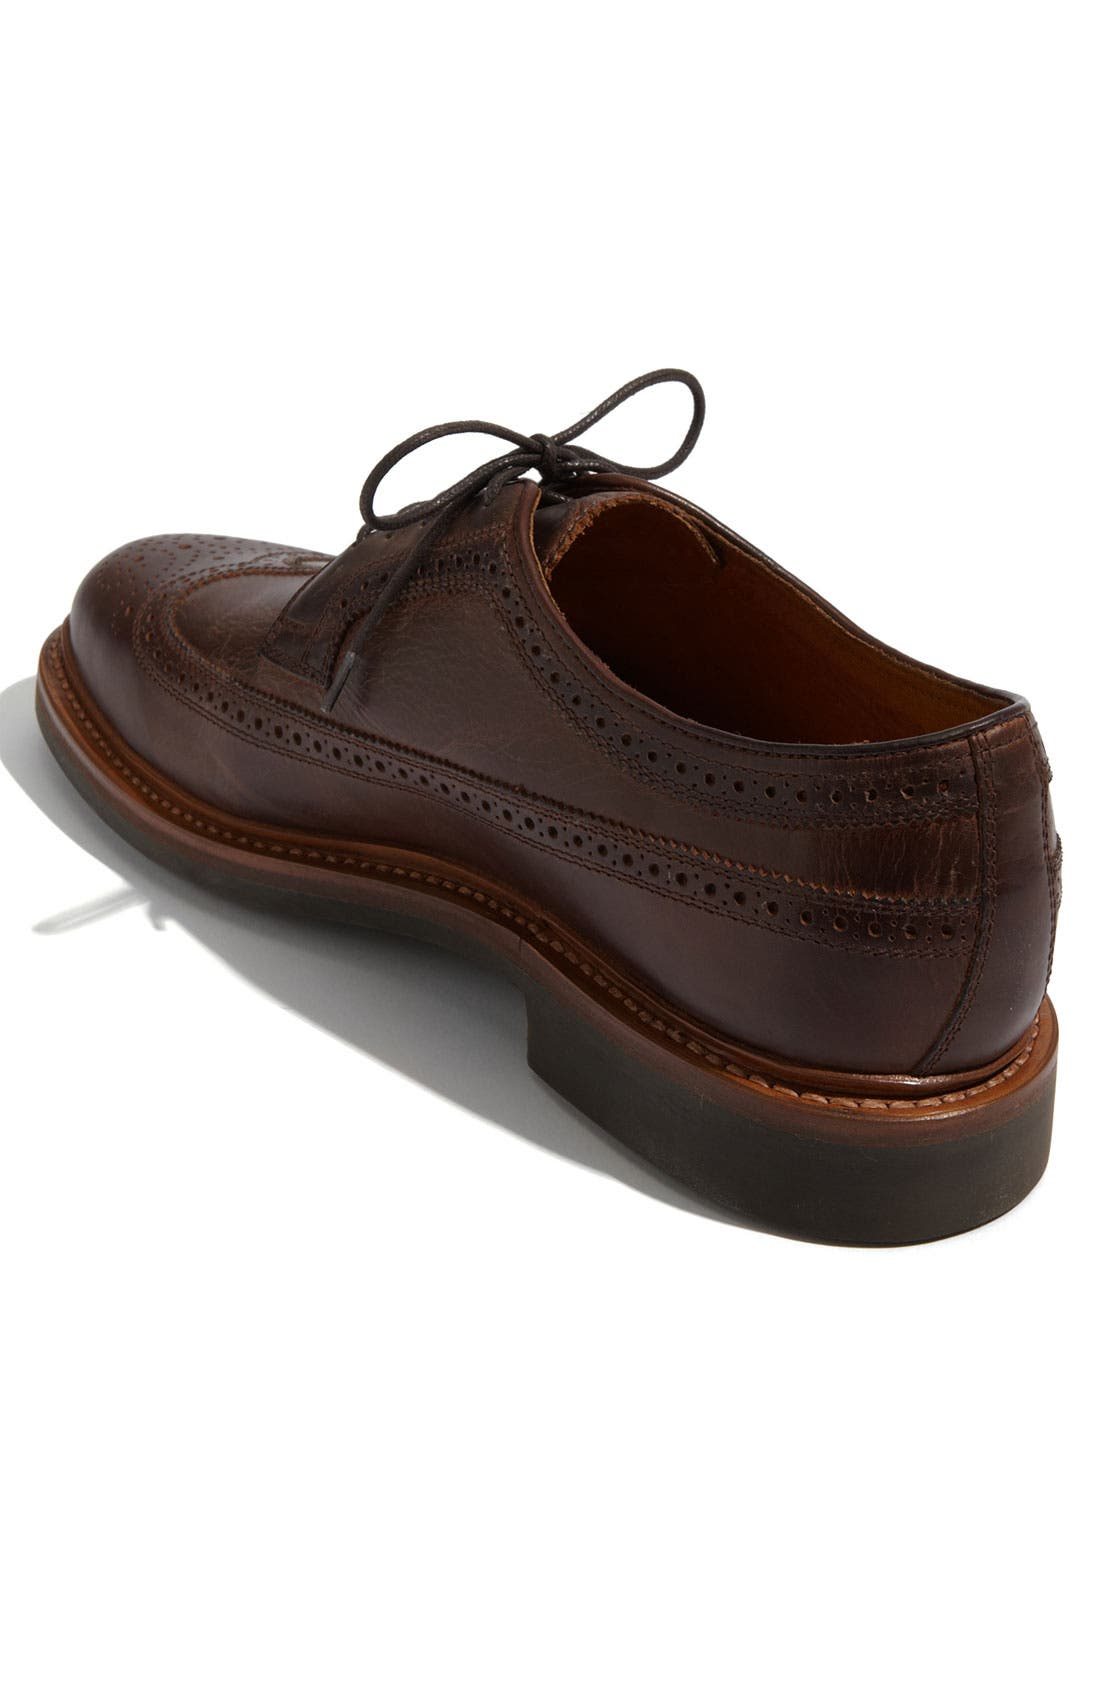 Alternate Image 2  - Florsheim 'Haviland' Oxford